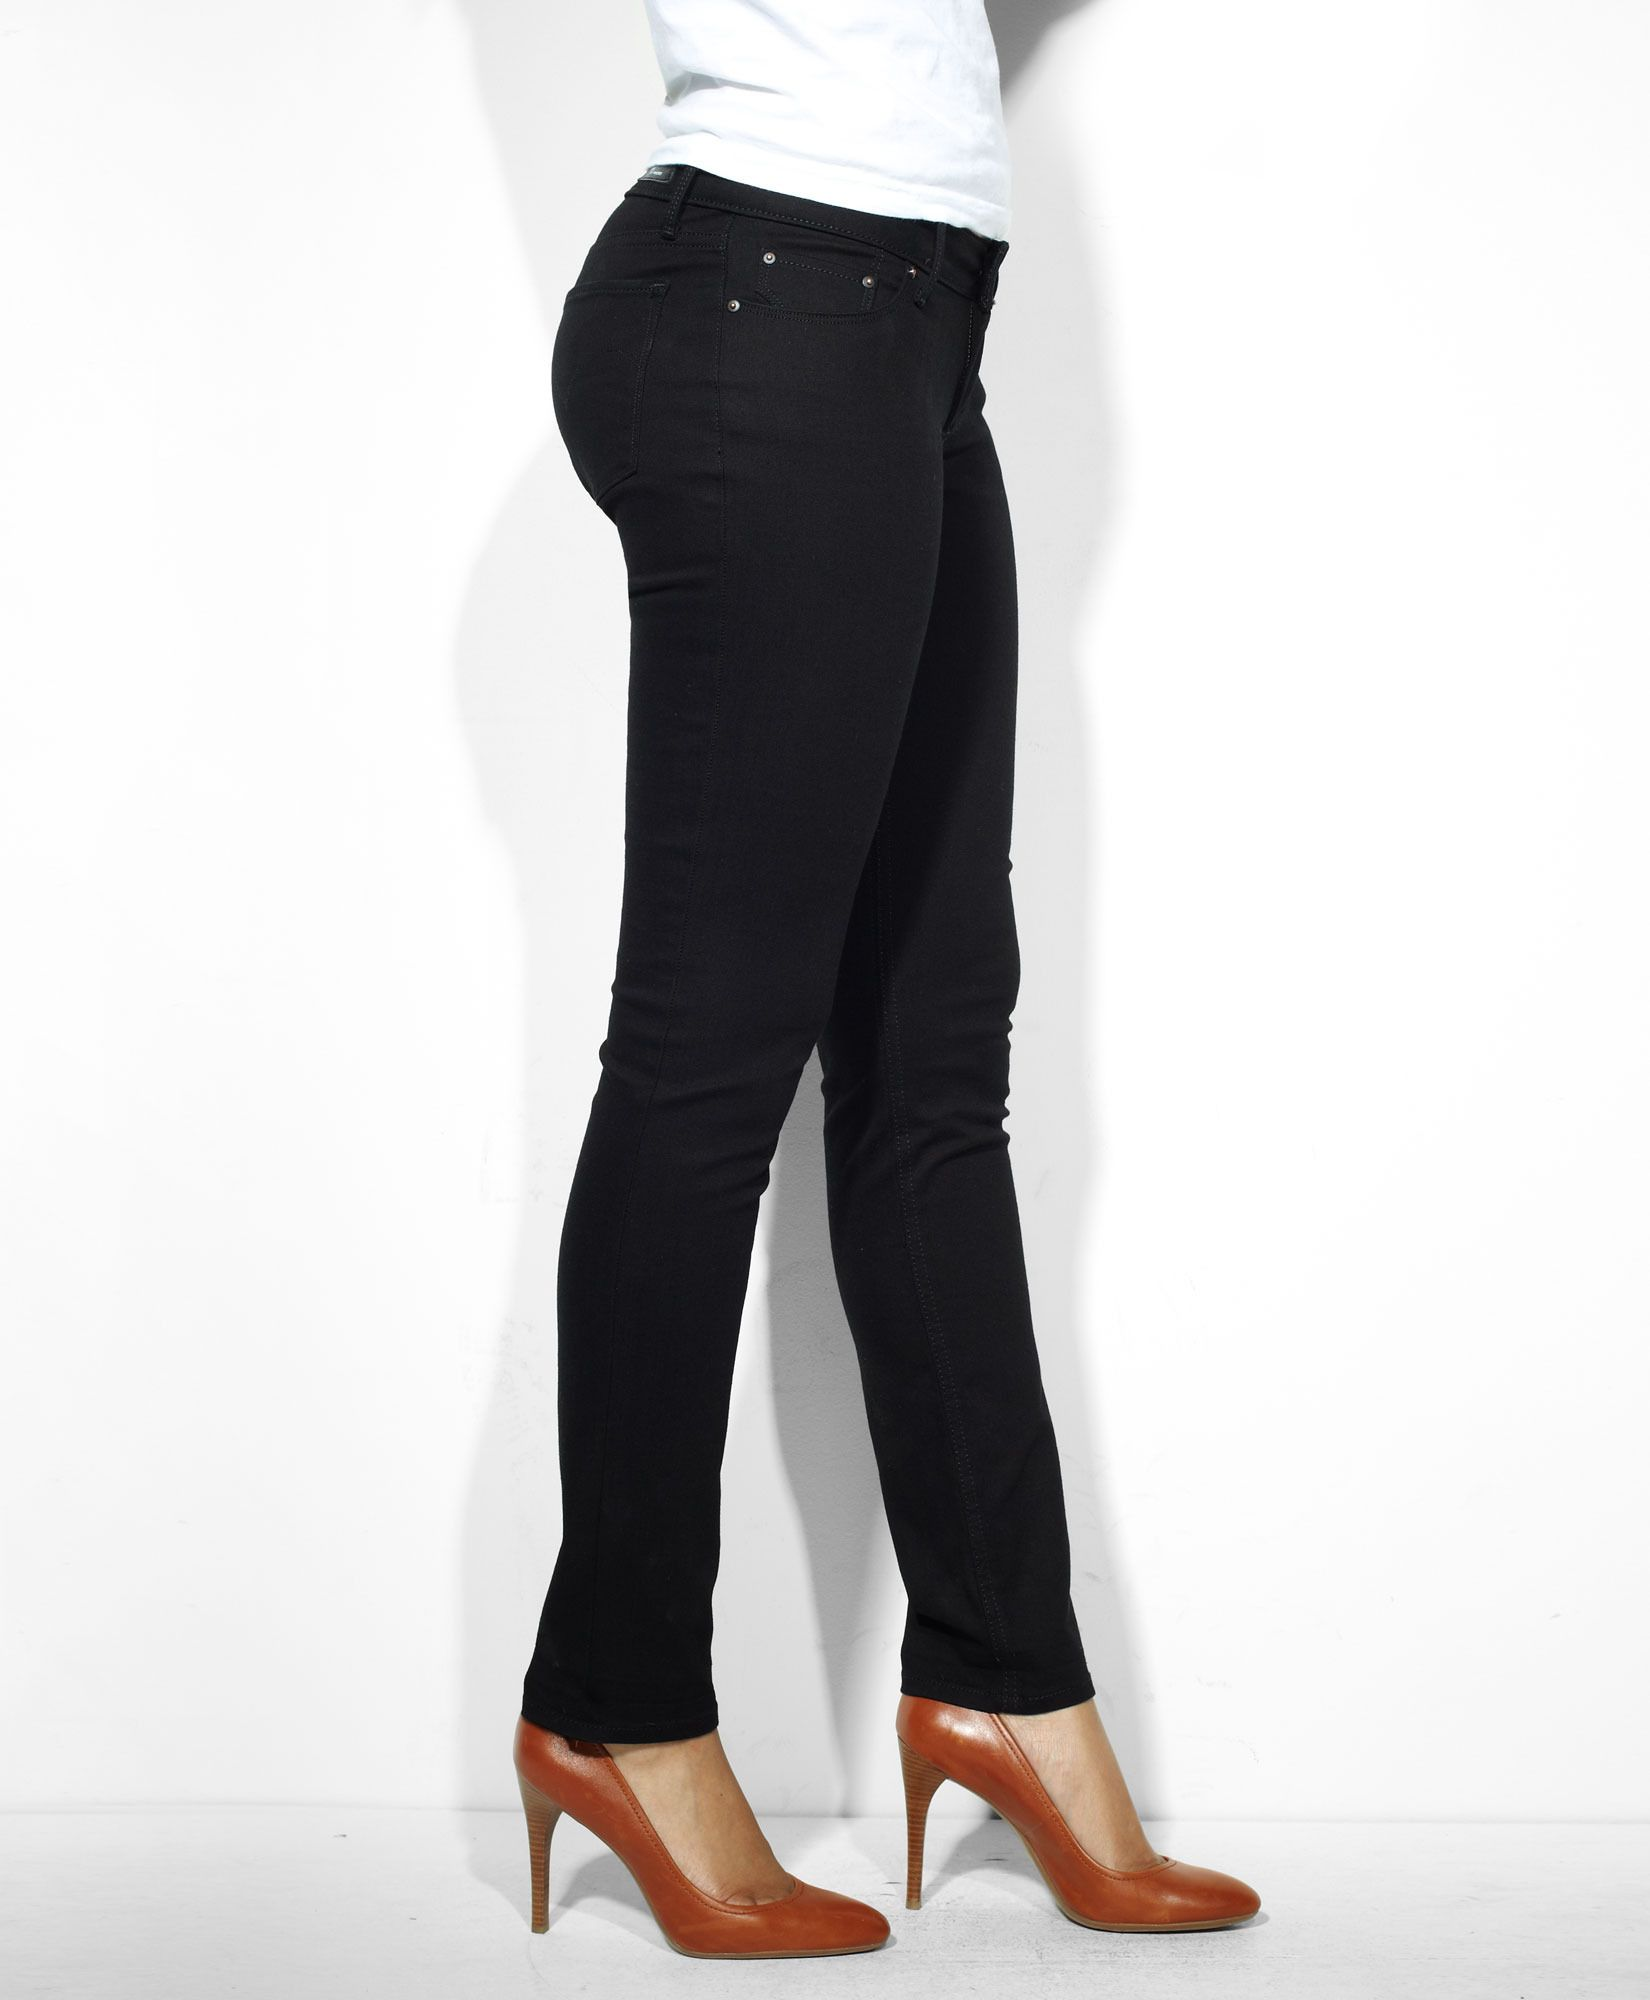 a9622223419 Levi's Modern Rise Supreme Curve Skinny Jeans - Pitch Black - Supreme Curve  Now this is what my ghetto booty needs.